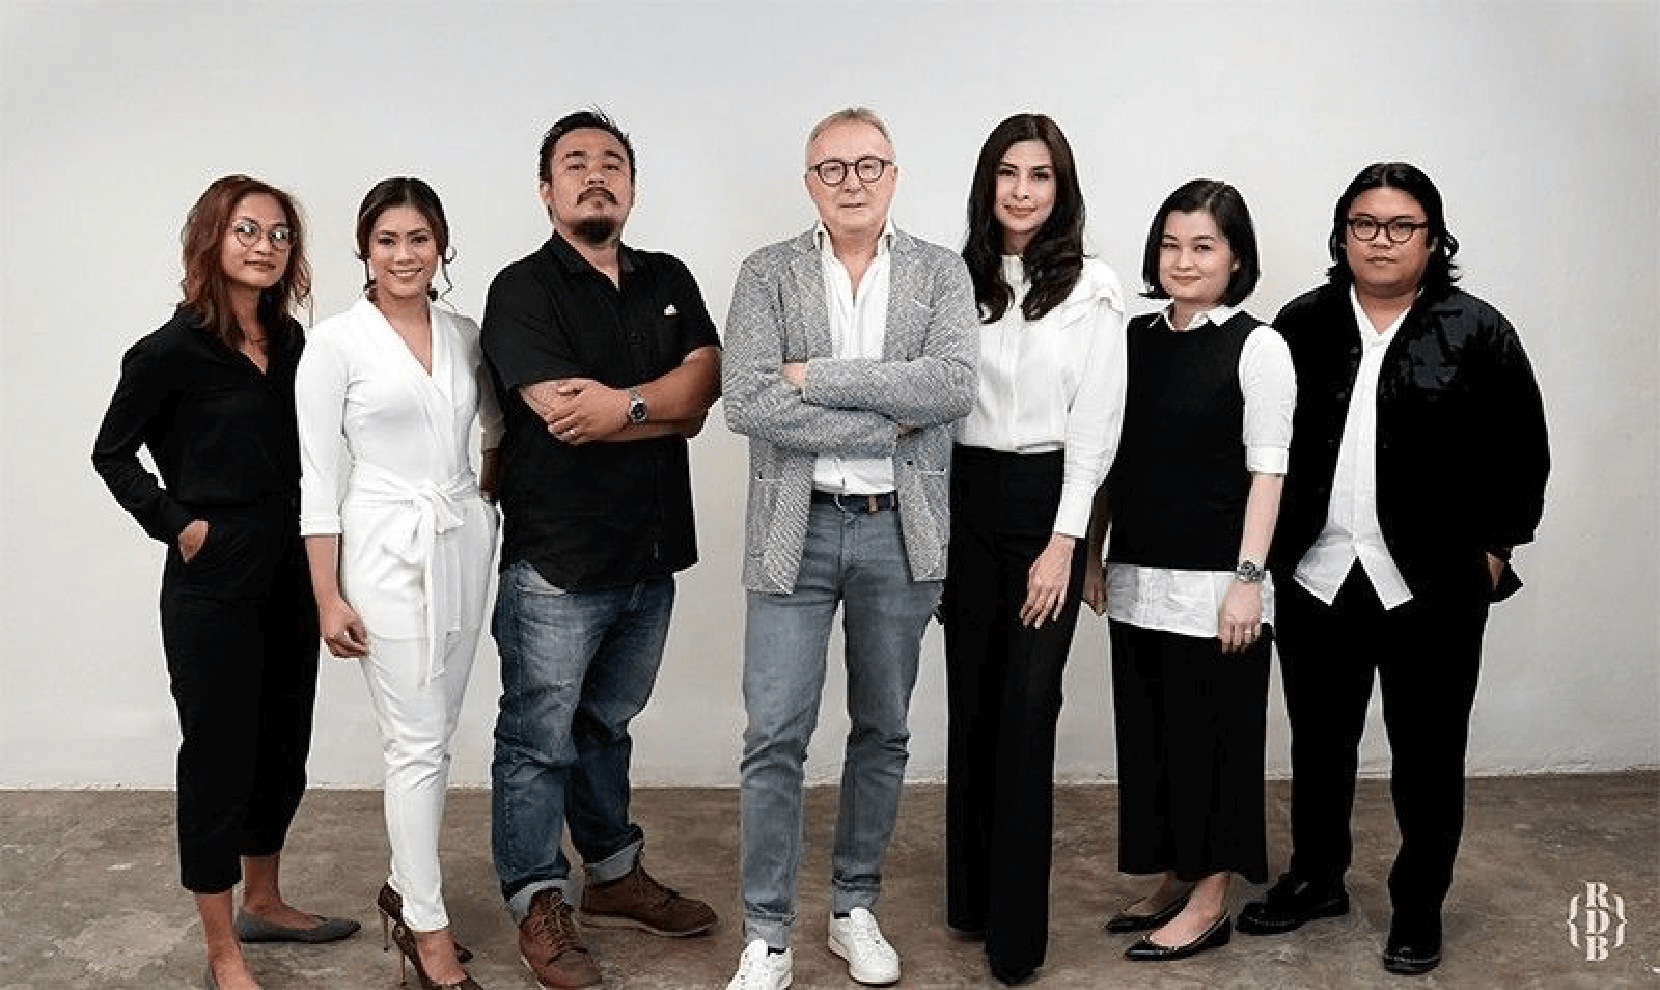 austrian-global-advertising-agency-rdb-makes-full-scale-entry-into-the-apac-market-based-in-manila